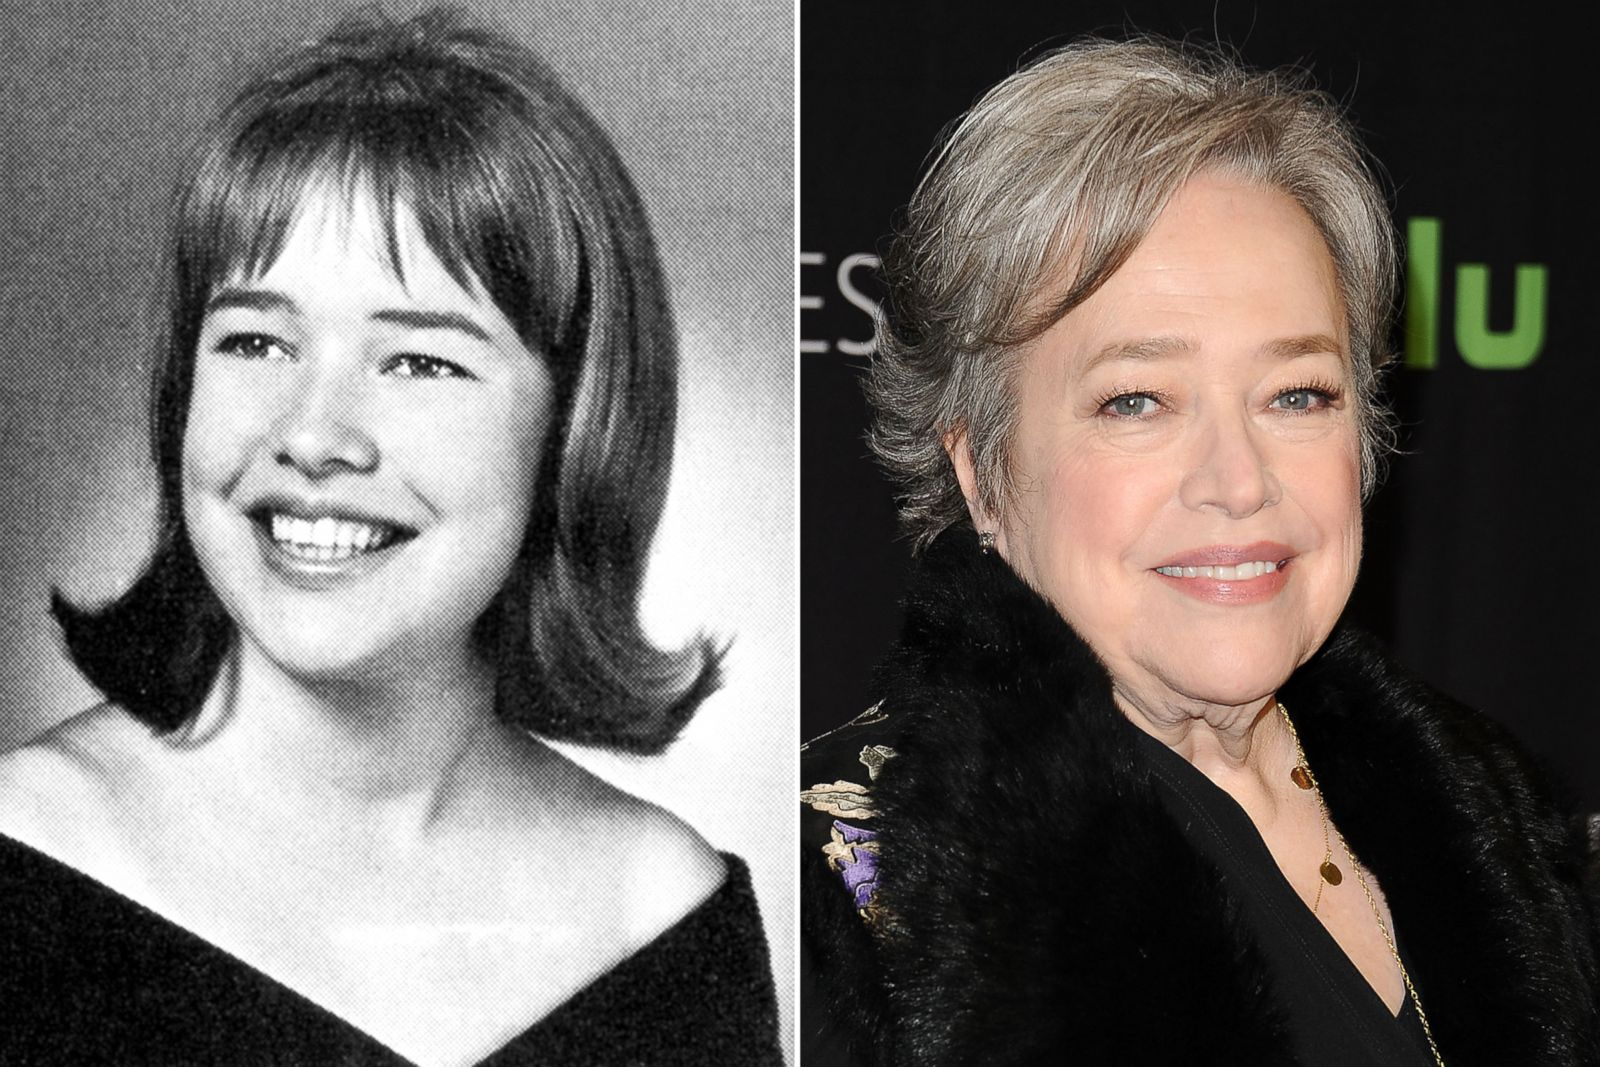 ' ' from the web at 'https://s.abcnews.com/images/Entertainment/HT-GTY-Kathy-Bates-ml-170628_3x2_1600.jpg'